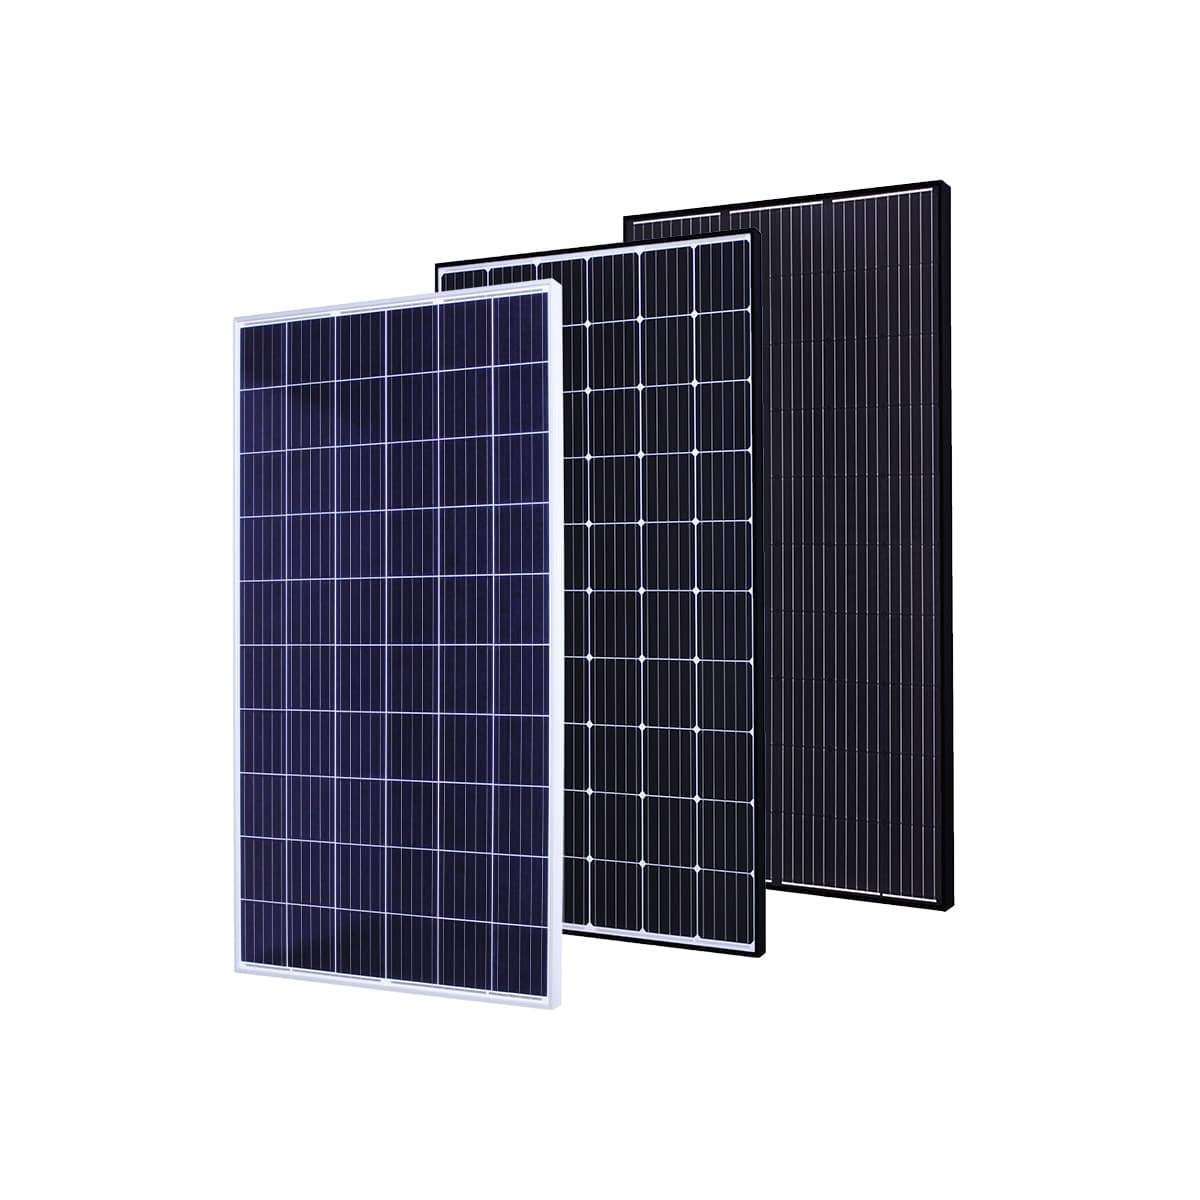 Solar Photovoltaic Panels (PV) | Buy Solar Panels at Best Retail Price